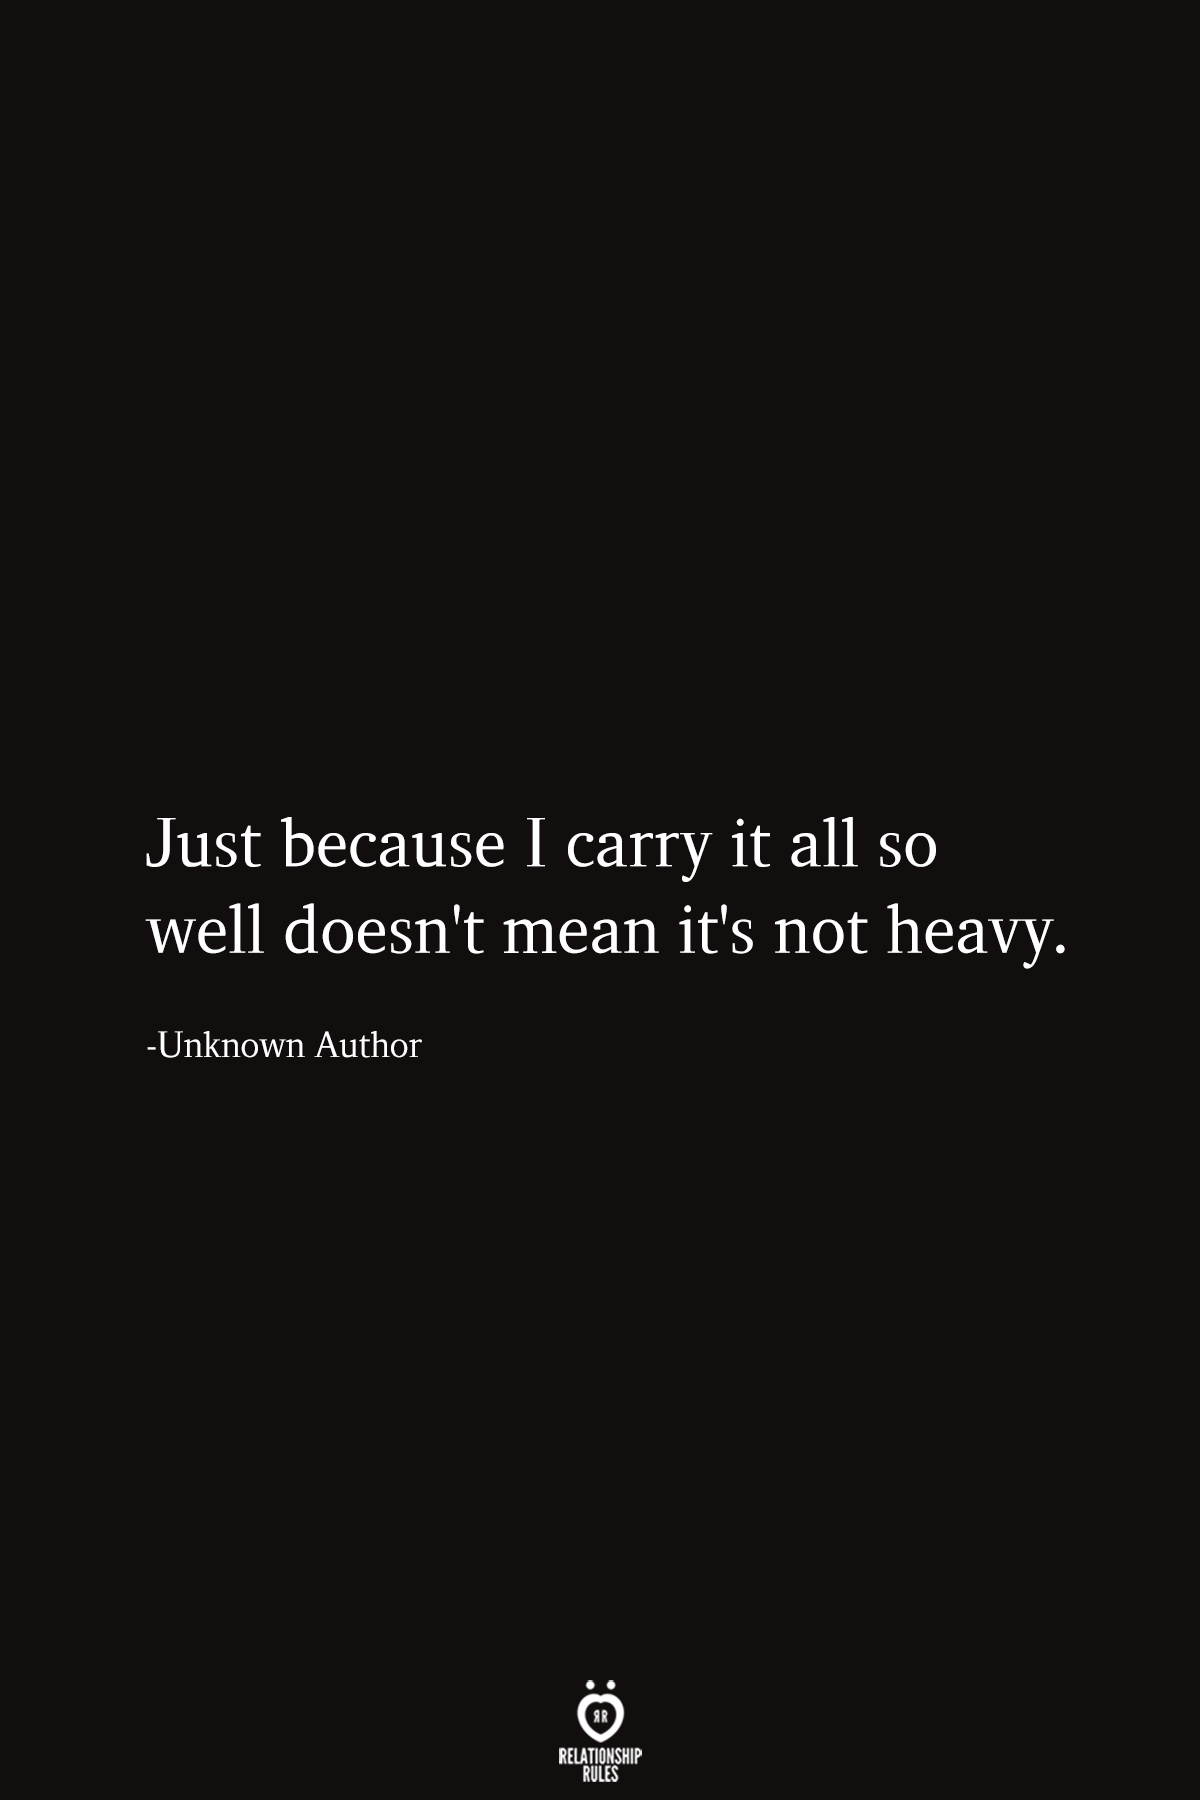 Just Because I Carry It All So Well Doesn't Mean It's Not Heavy